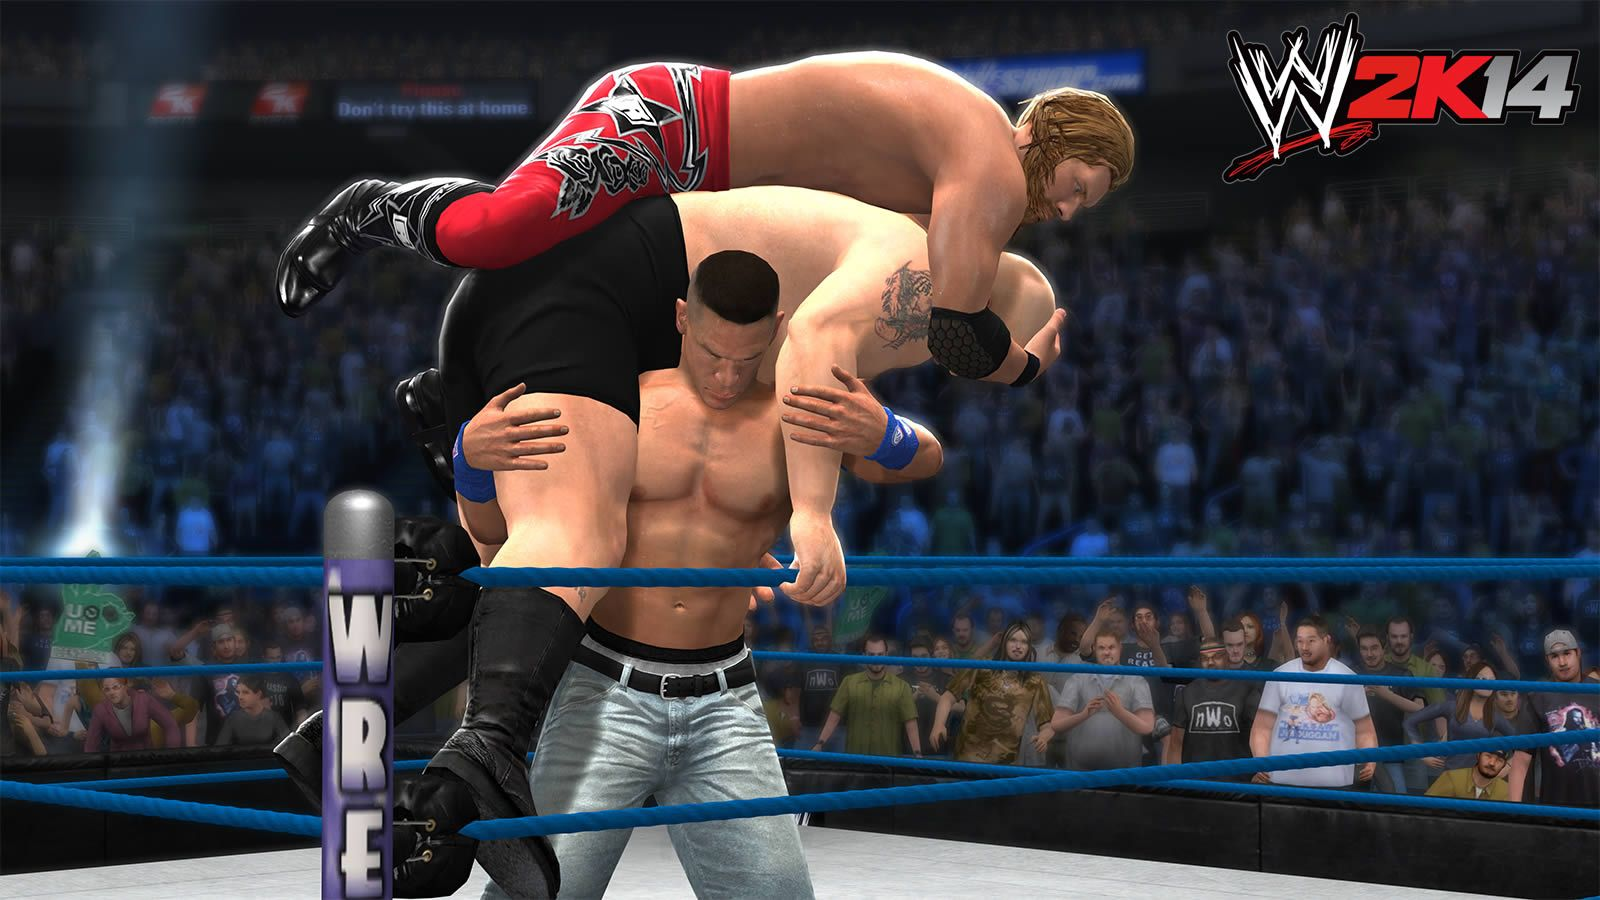 wrestlemania xxv: world heavyweight champion edge vs. john cena vs